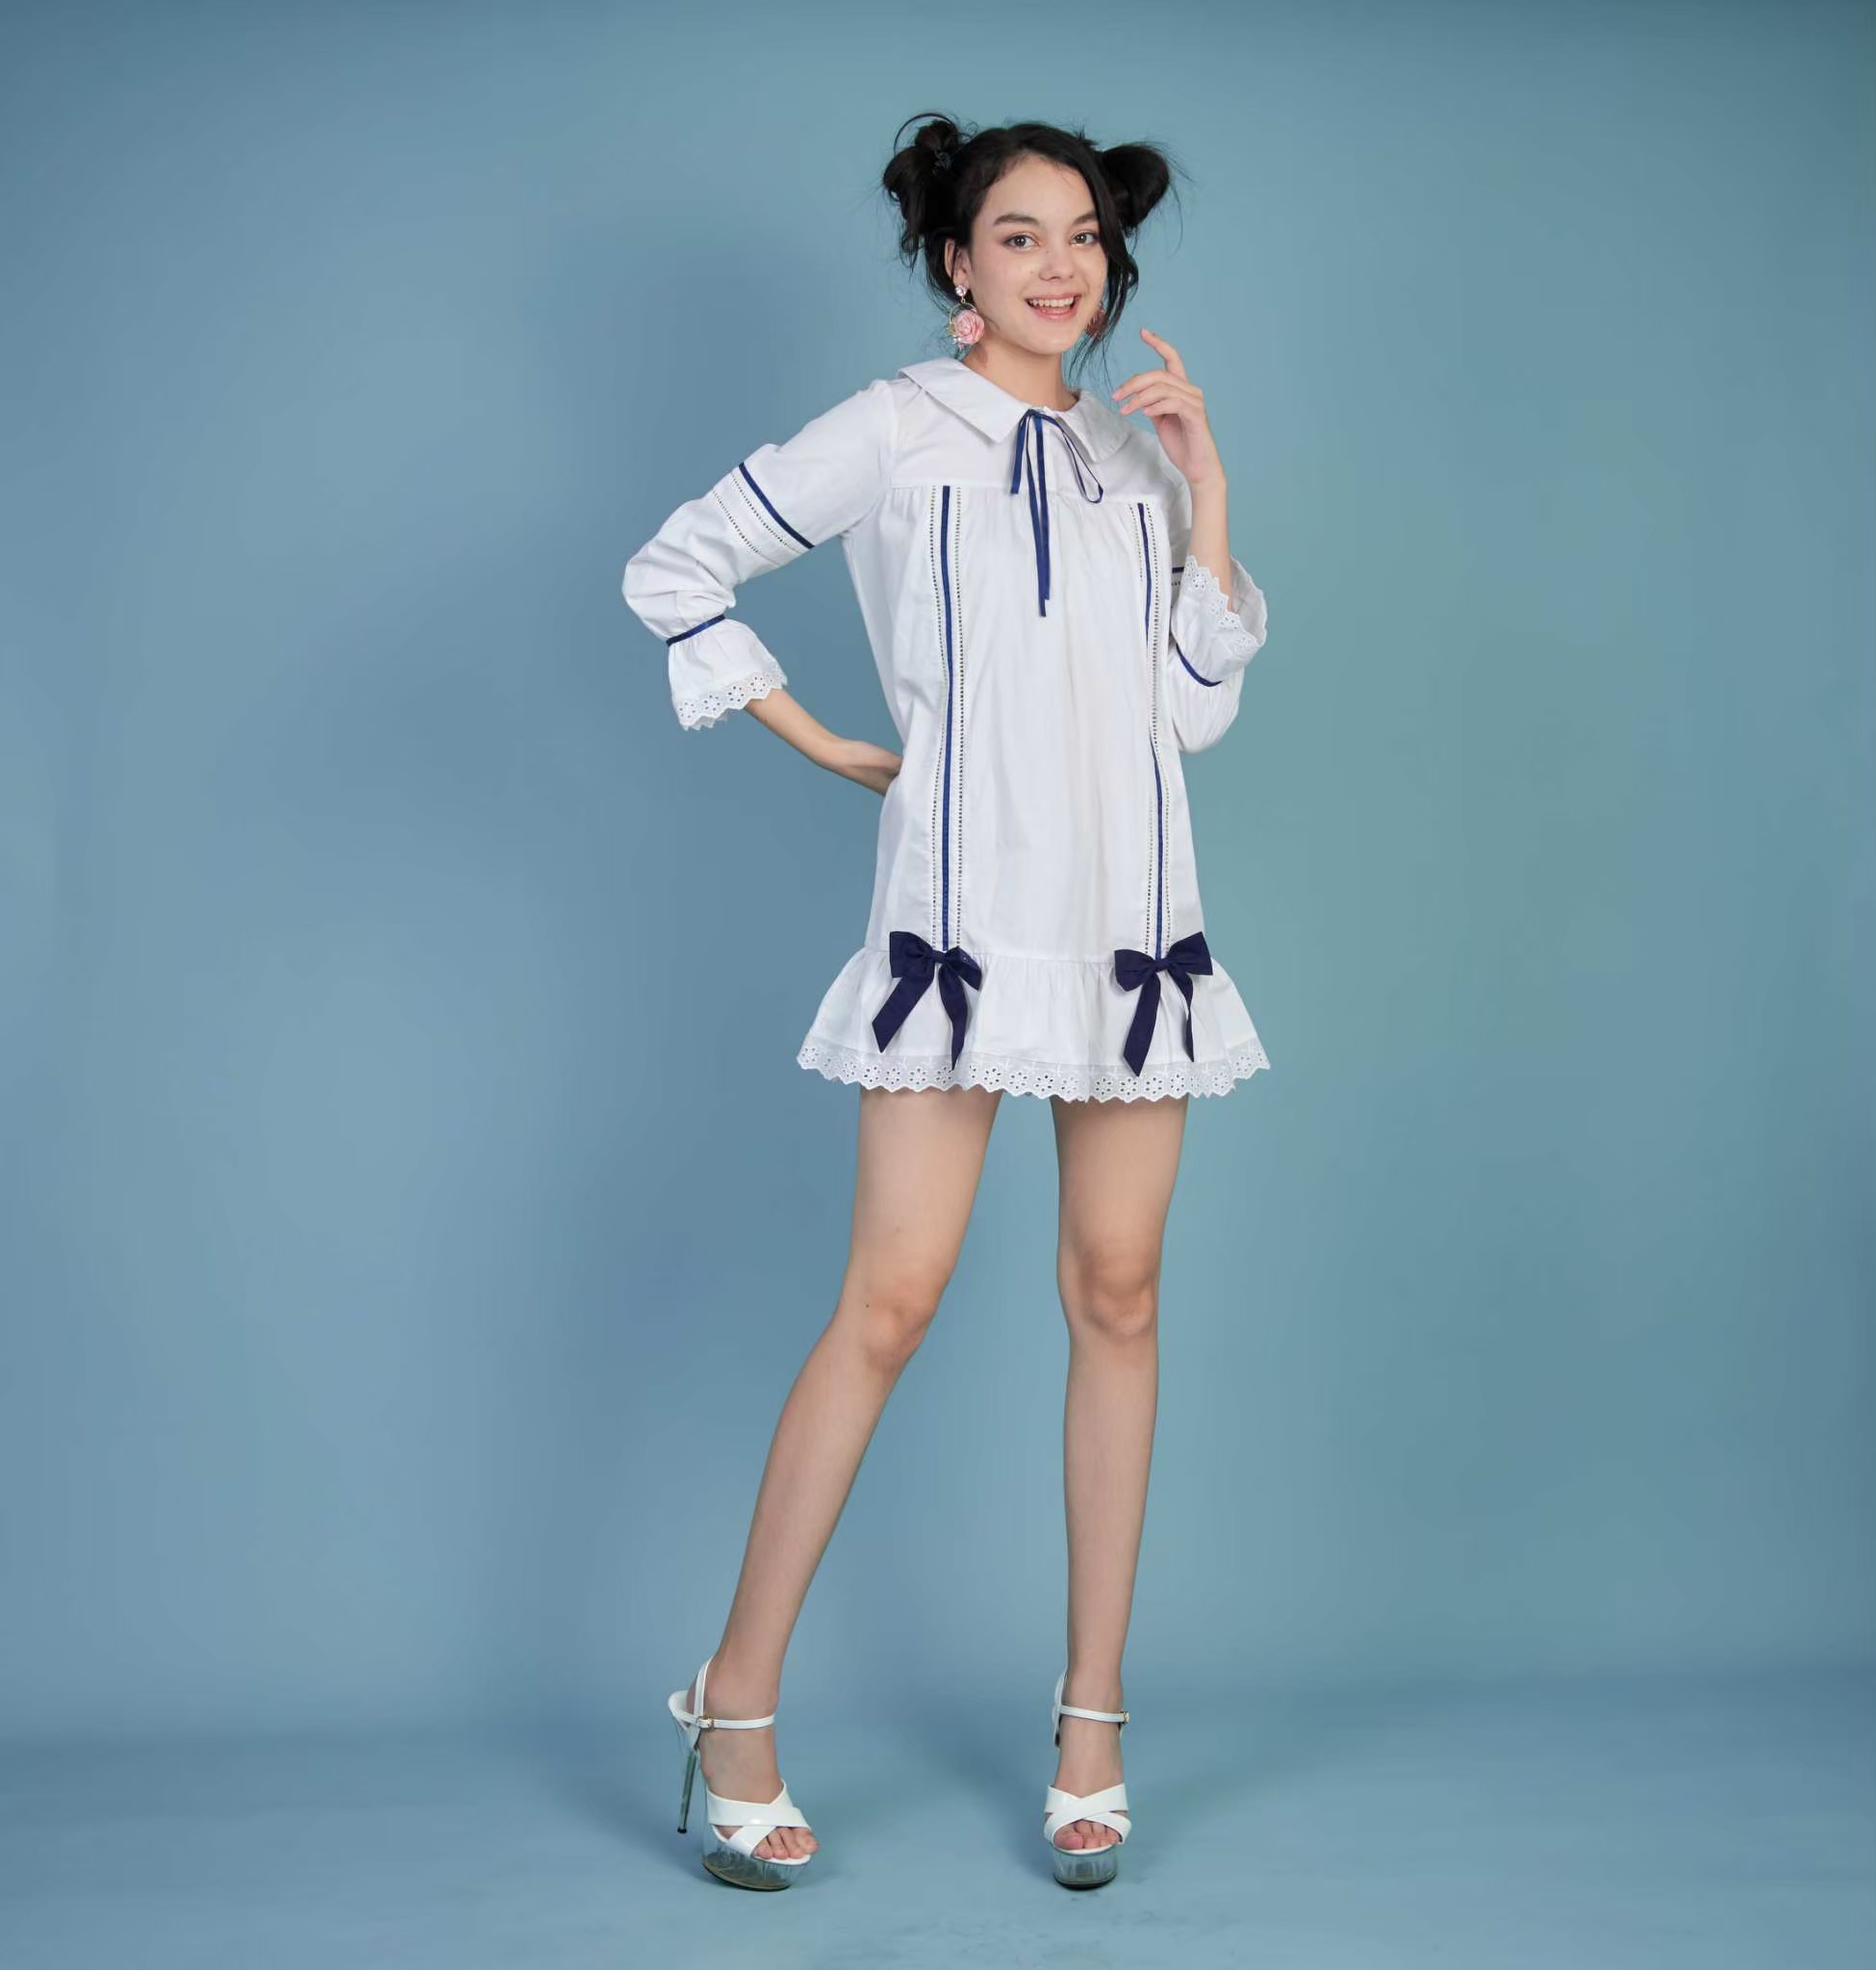 KYS063 Volume Bow-Tied Long Sleeve with lace dress - In Stock 31st Aug